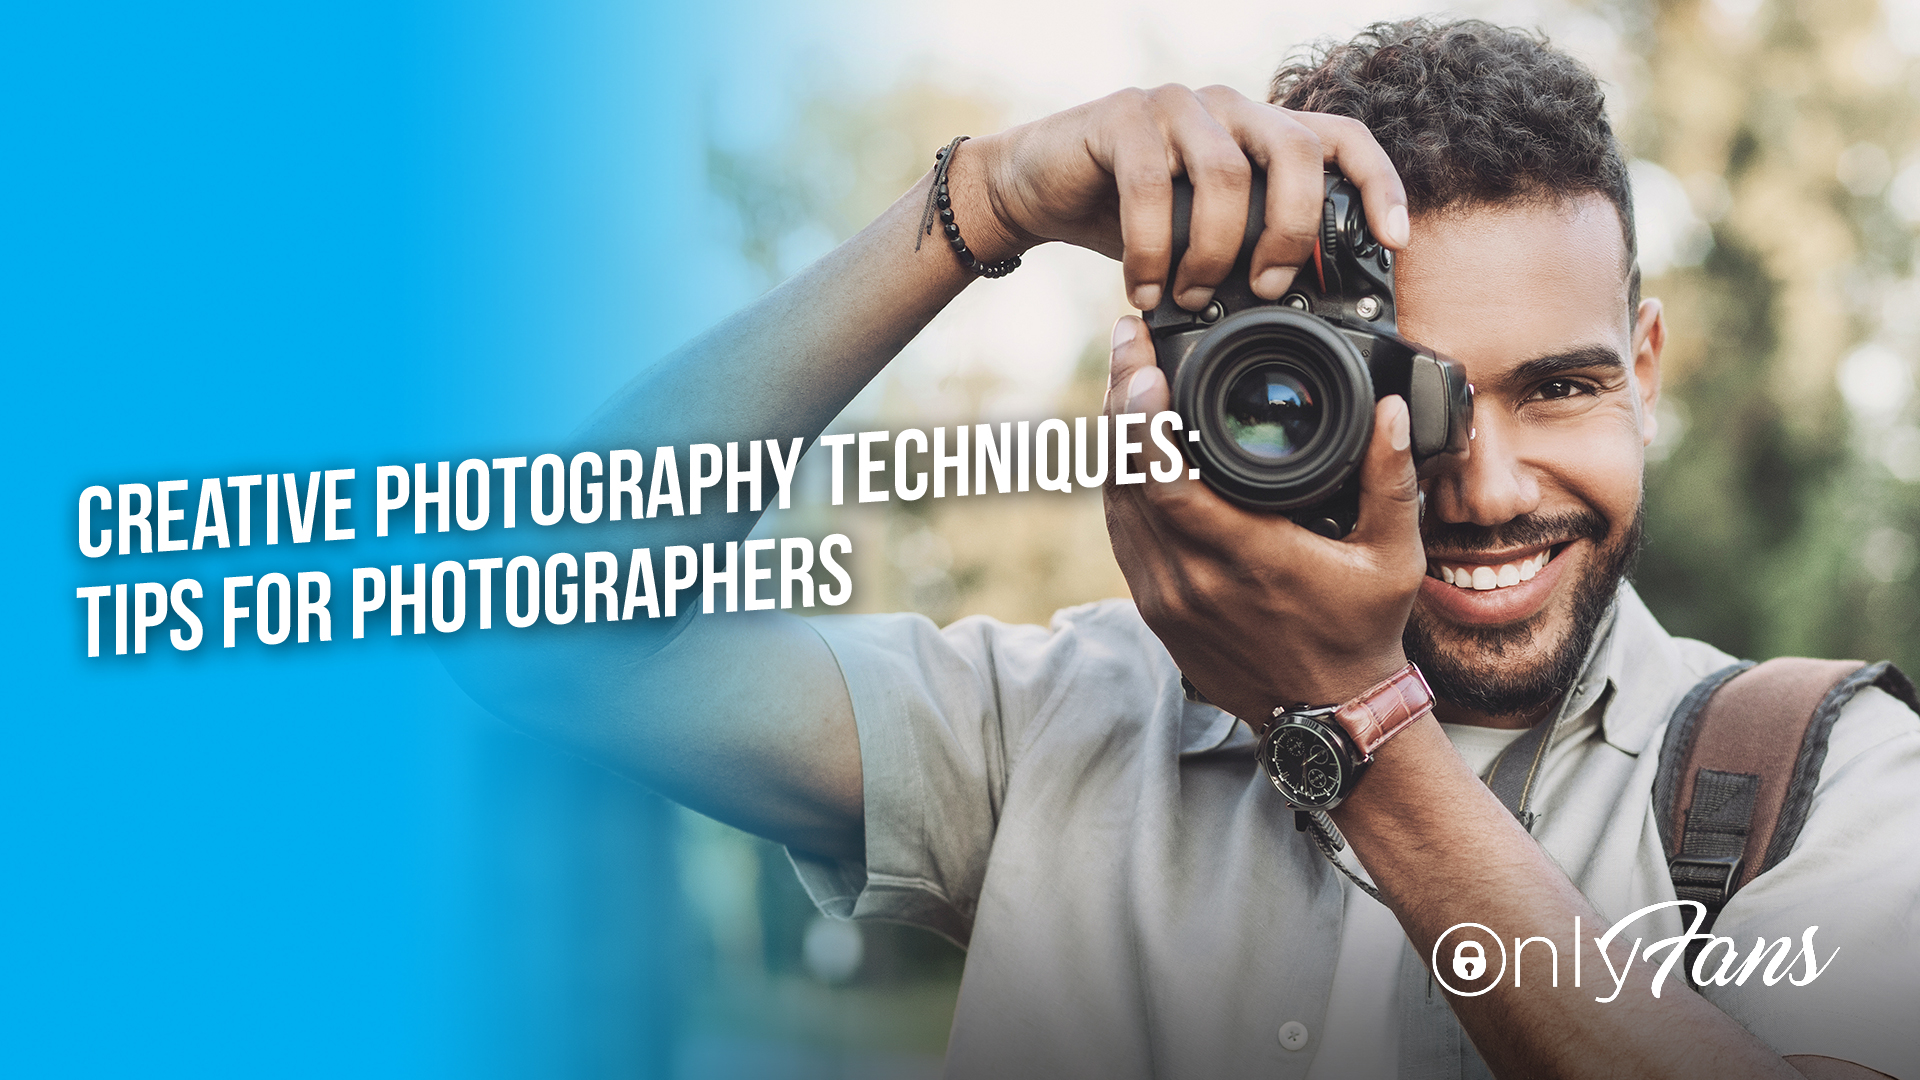 Creative Photography Techniques: Tips For Photographers